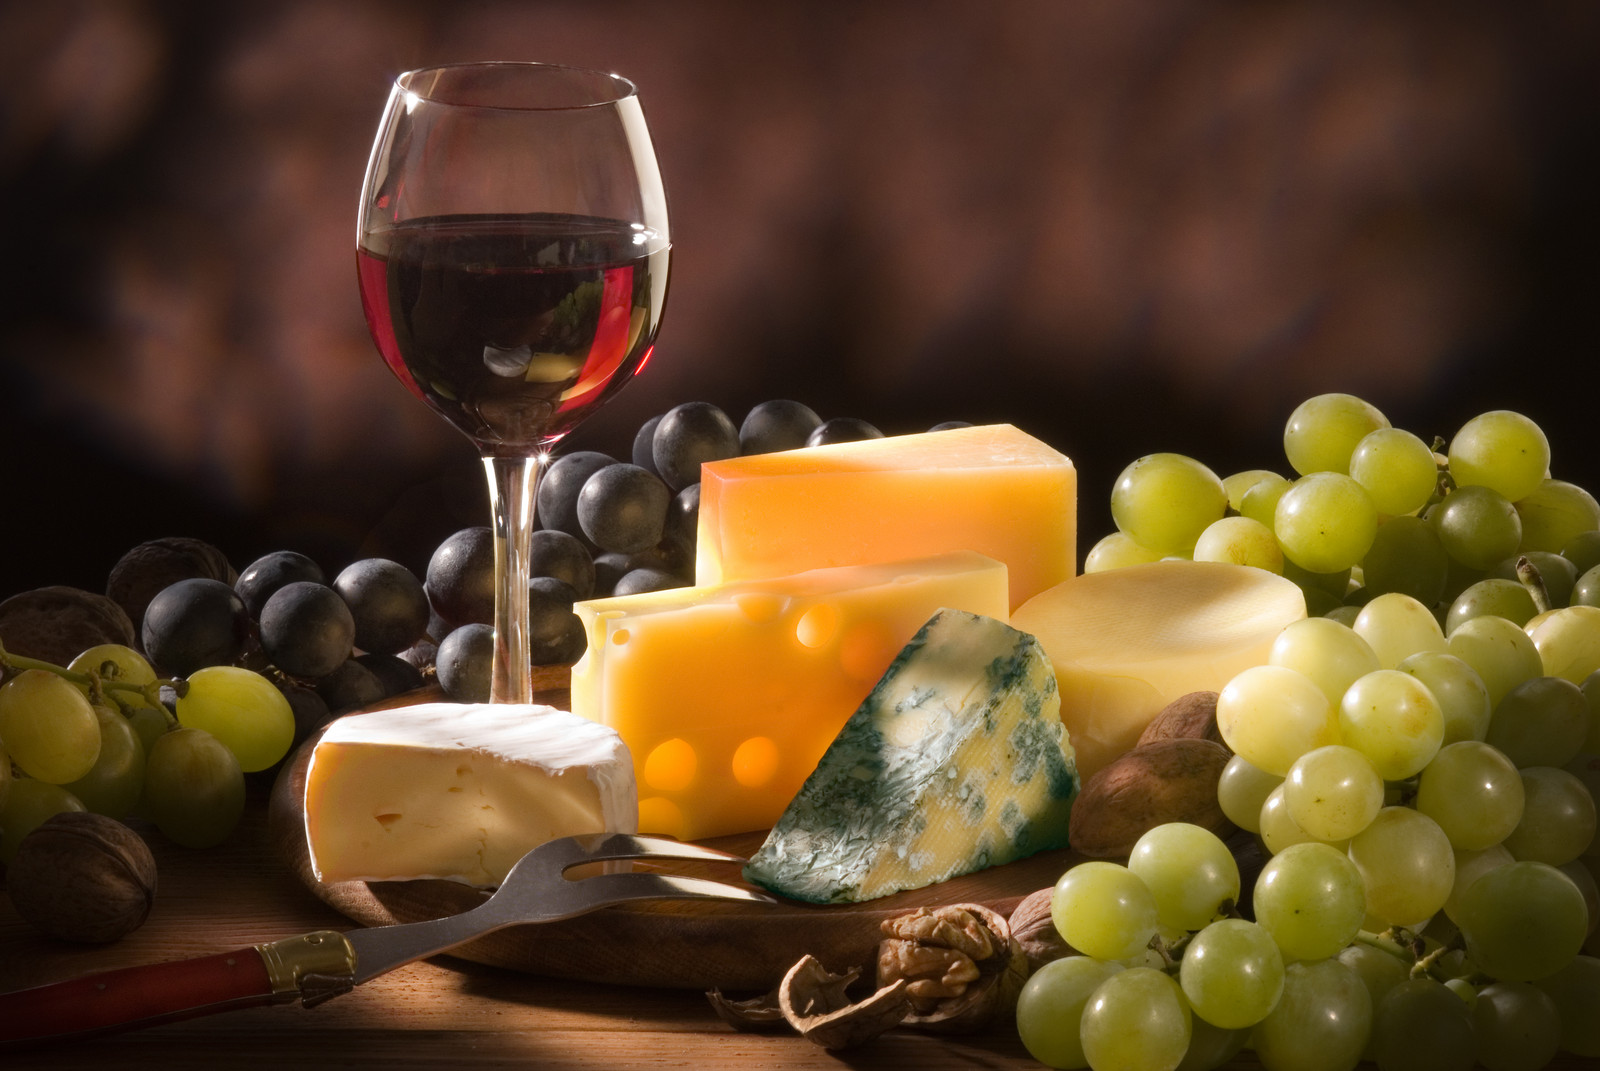 Wine Lovers special : assorted cheese and crackers, fresh fruit platter crudite, Cabernet red, Chardonnay white. $24 per person.